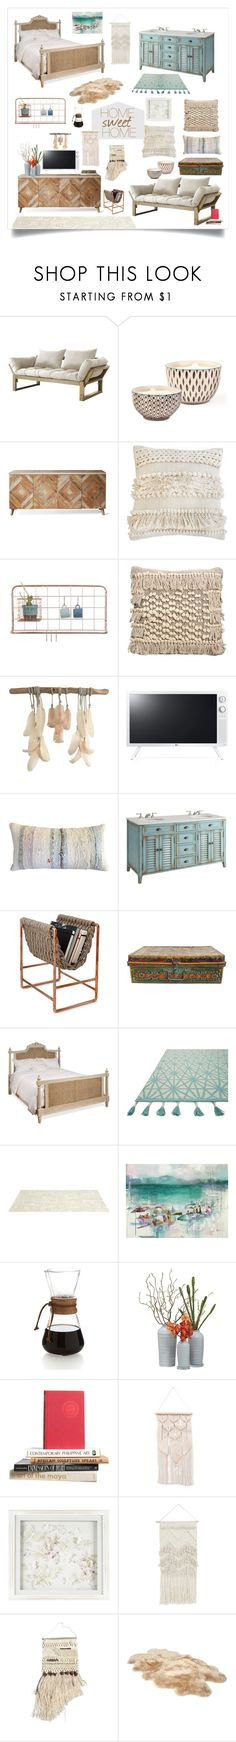 """""""home sweet bohemian."""" by tothineownselfbtrue ❤ liked on Polyvore featuring interior, interiors, interior design, home, home decor, interior decorating, Fresh Futon, Bambeco, Pom Pom at Home and Homage"""